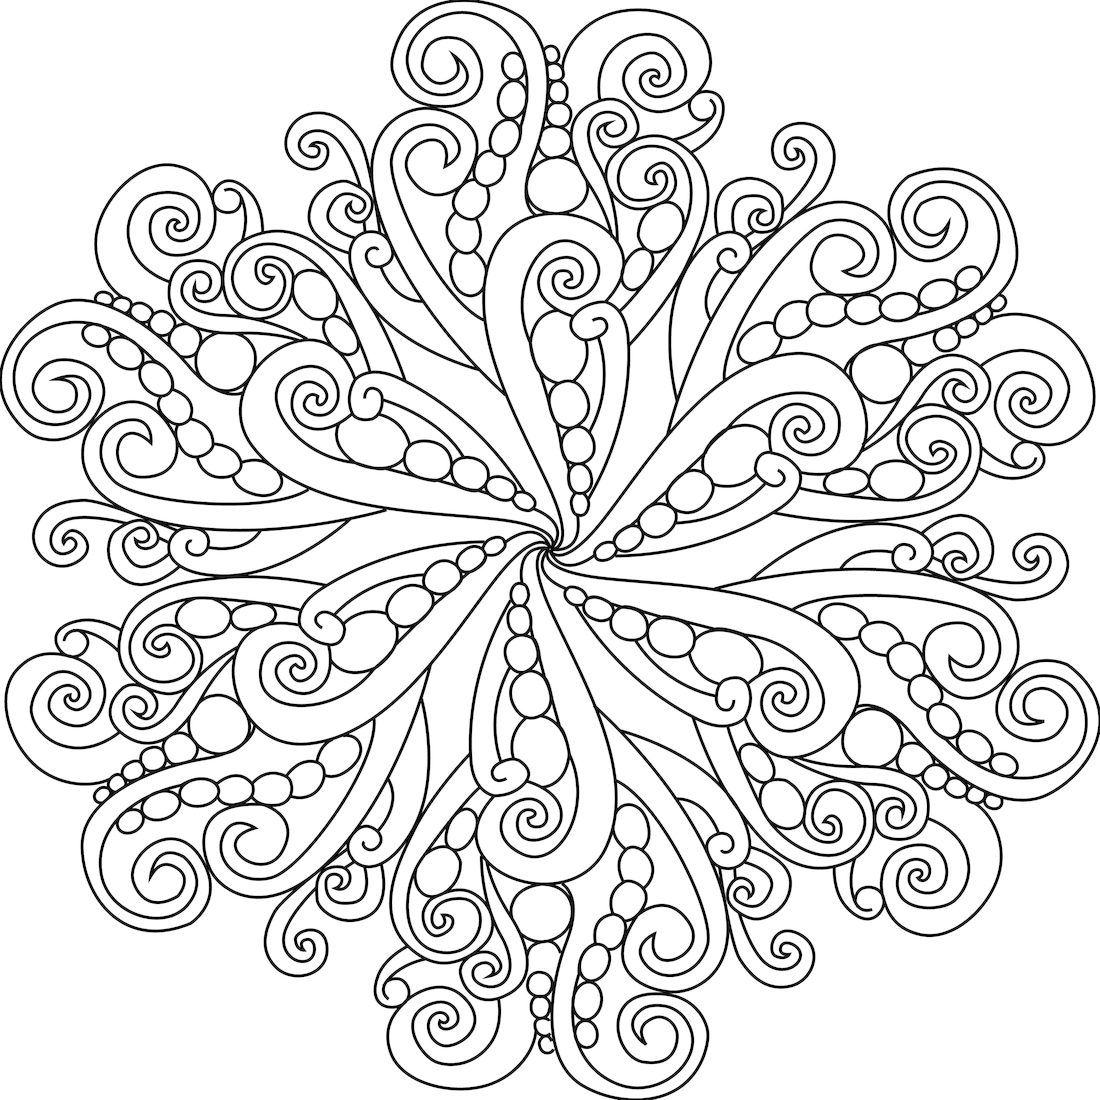 Mandala Coloring Pages for Girls Unique Printable Adult to Print Gallery Of Modern Intricate Mandala Coloring Pages Coloring for Good Mandala to Print